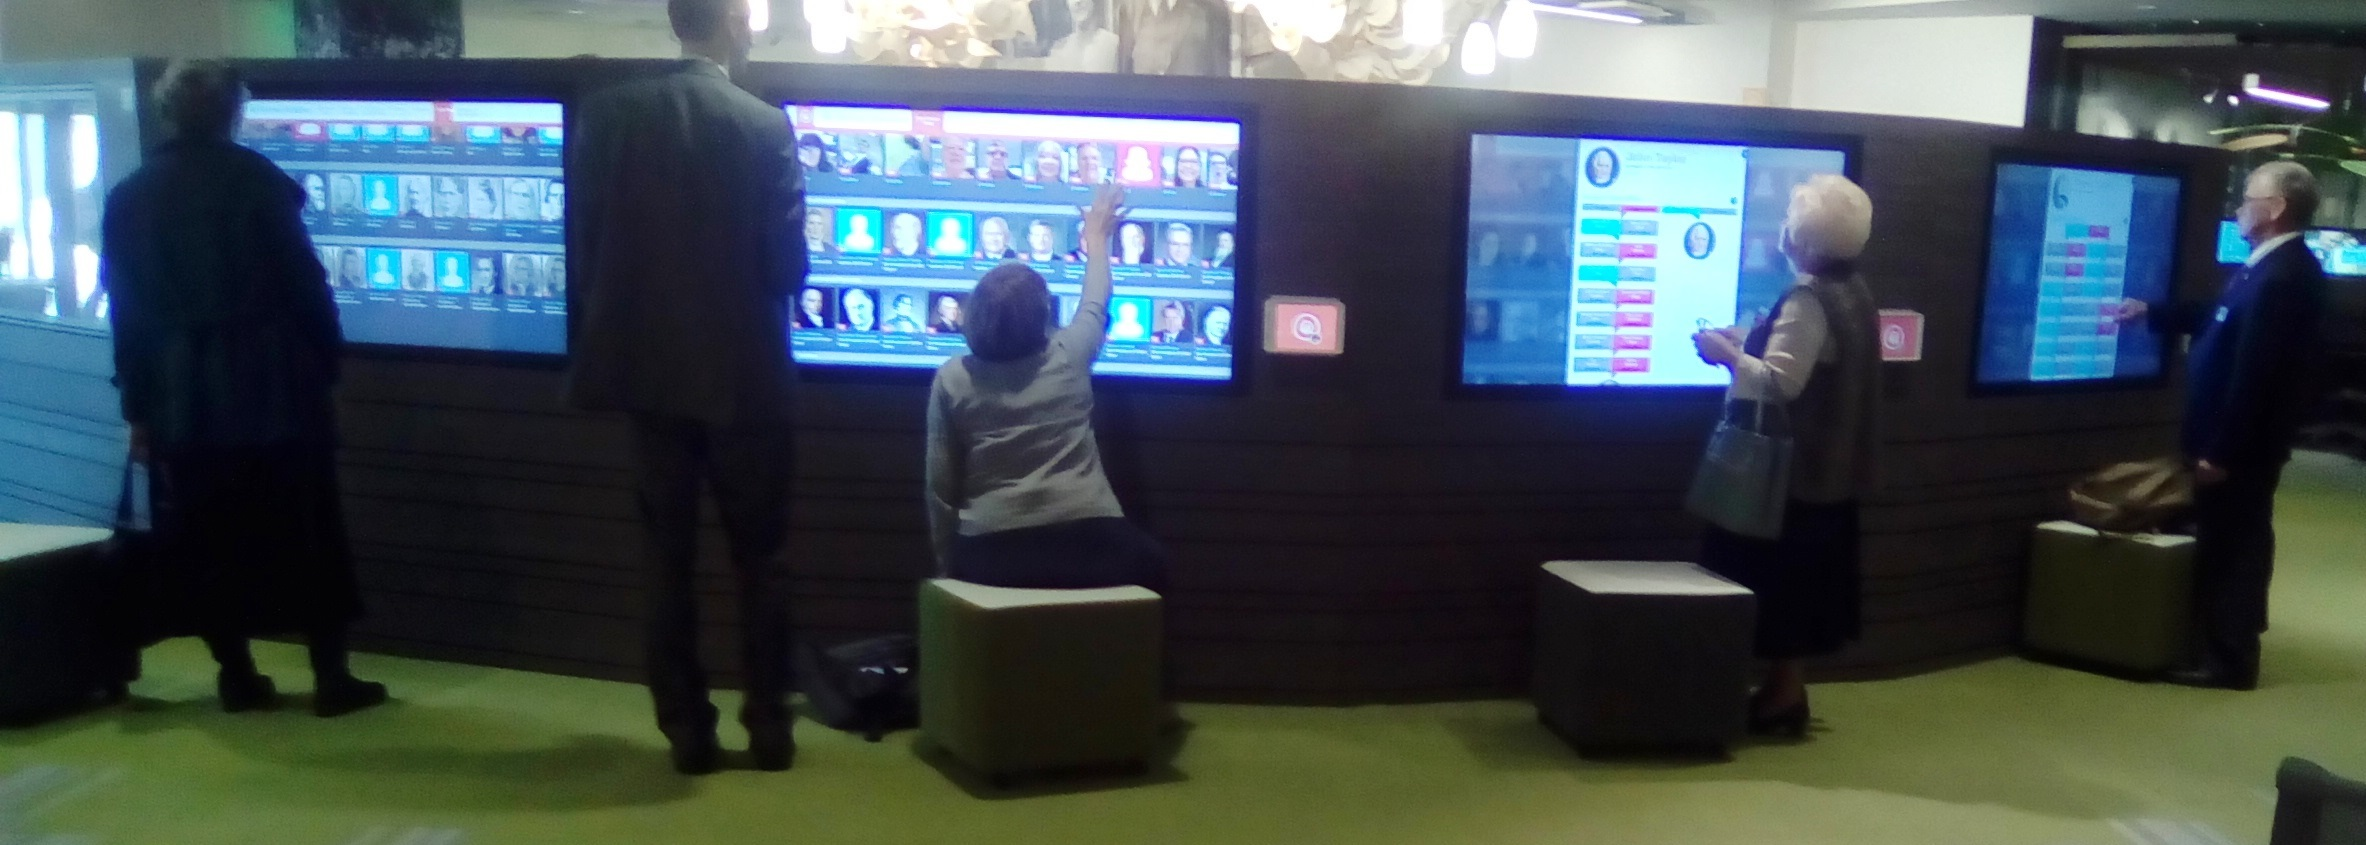 People interacting with touchscreens